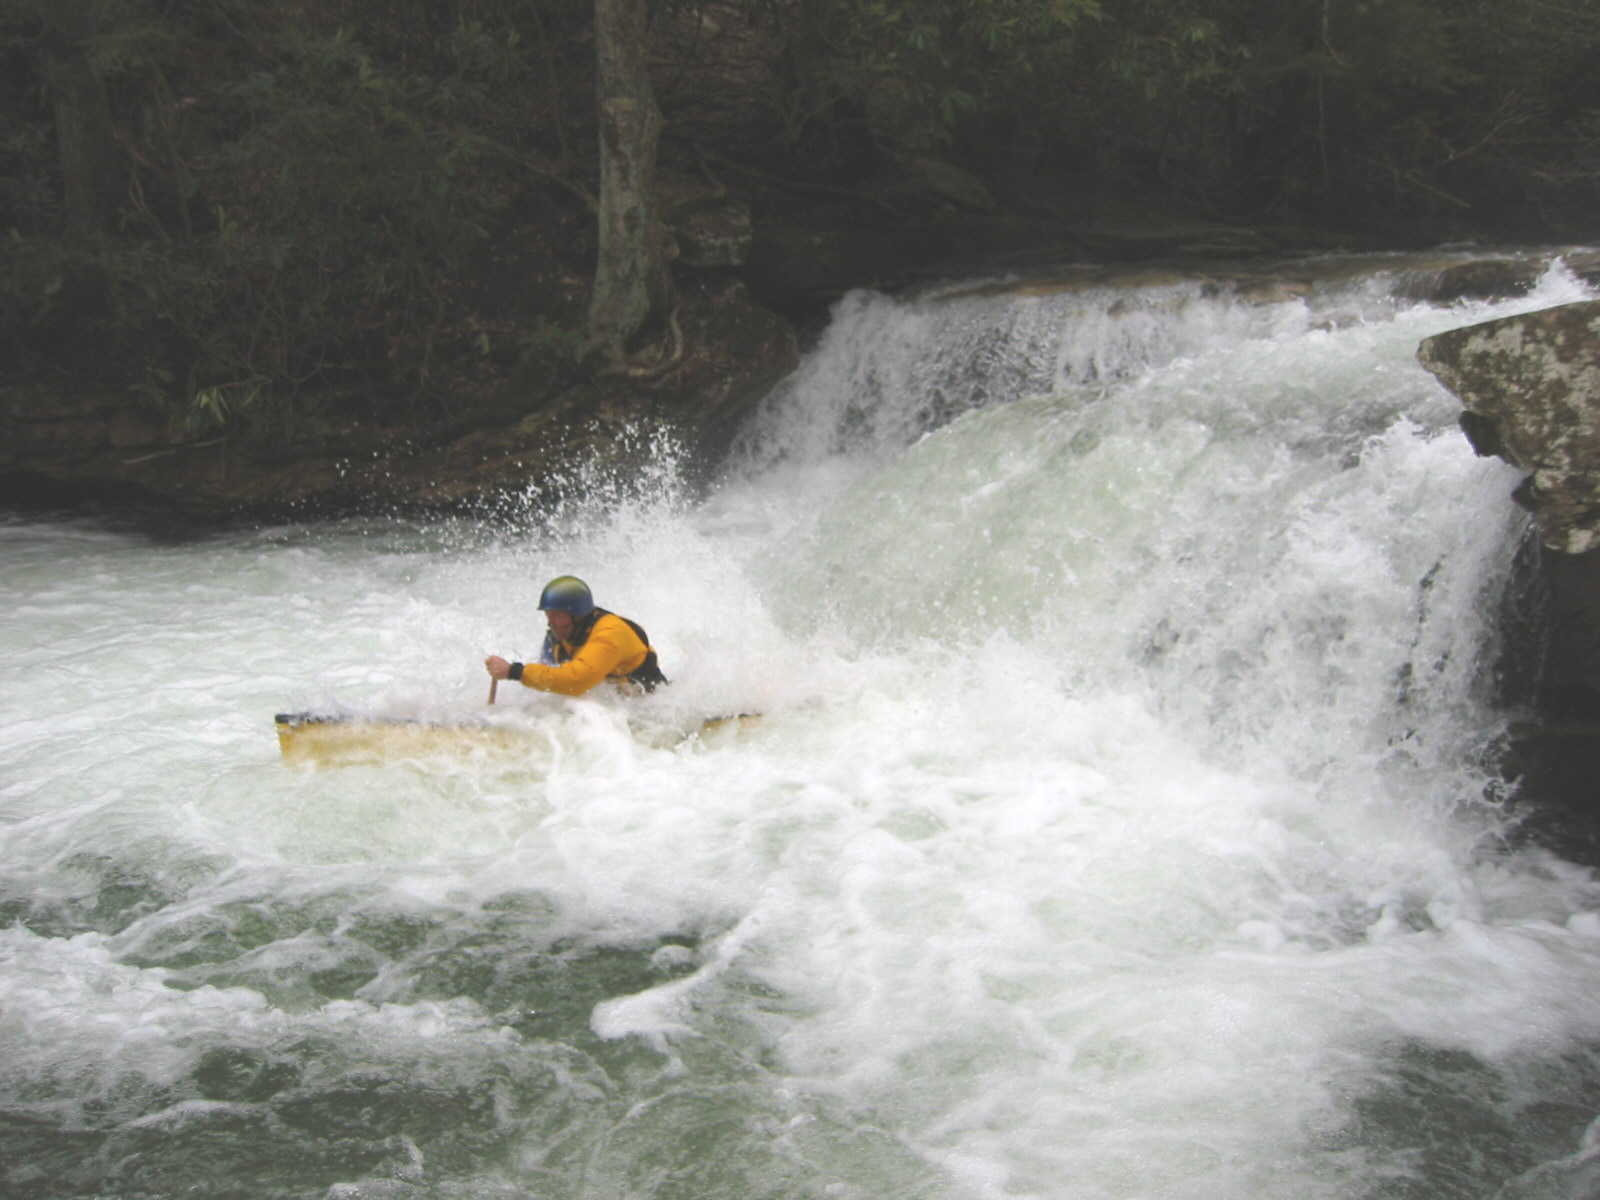 Jim Pruitt running Sugar Creek ledge (Photo by Scott Gravatt - 4/27/04)